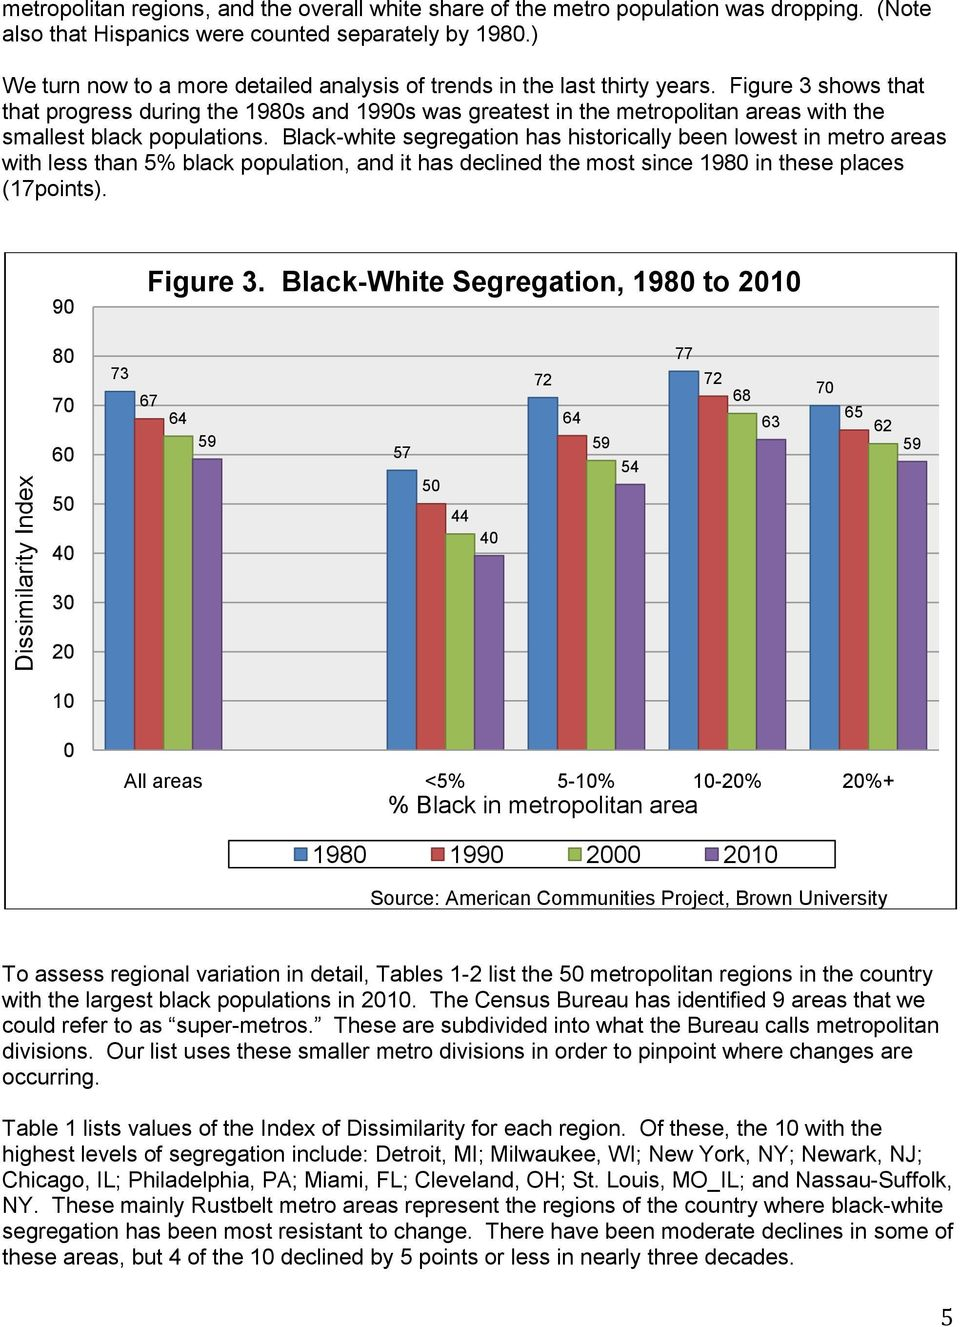 Figure 3 shows that that progress during the 1980s and 1990s was greatest in the metropolitan areas with the smallest black populations.